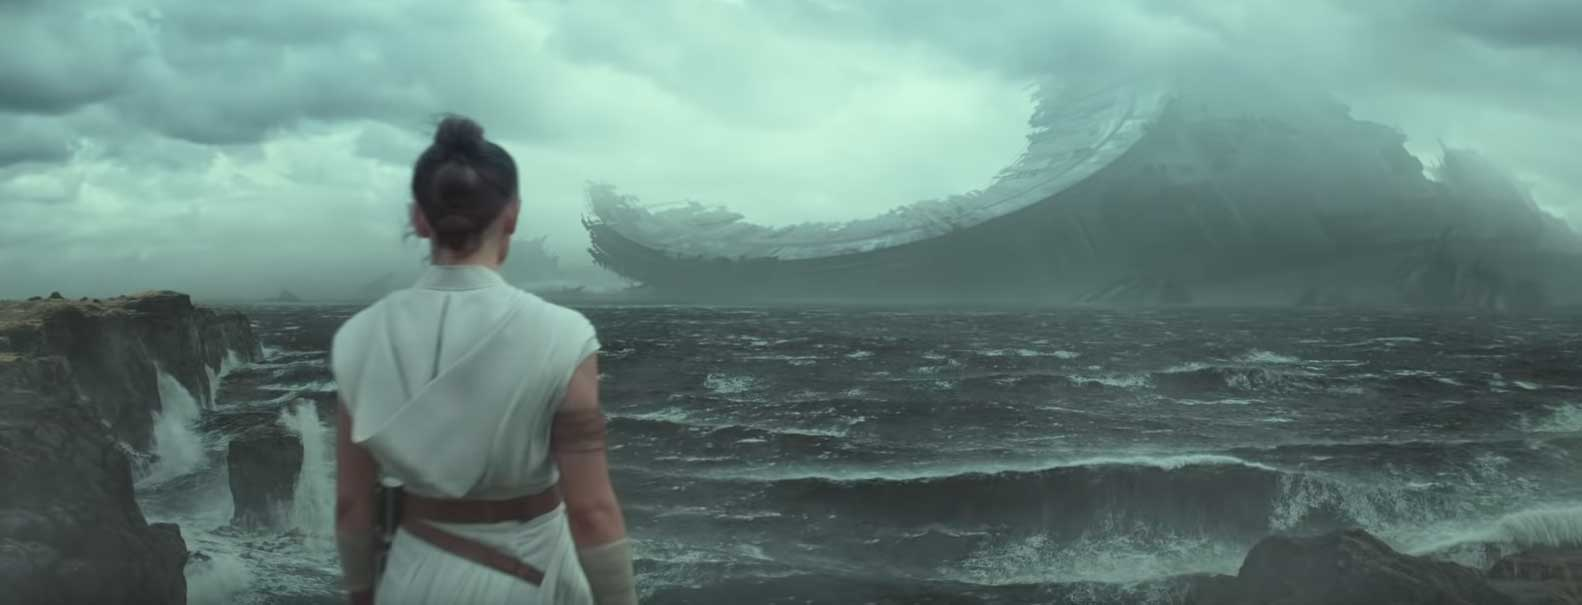 Star Wars Episode IX trailer